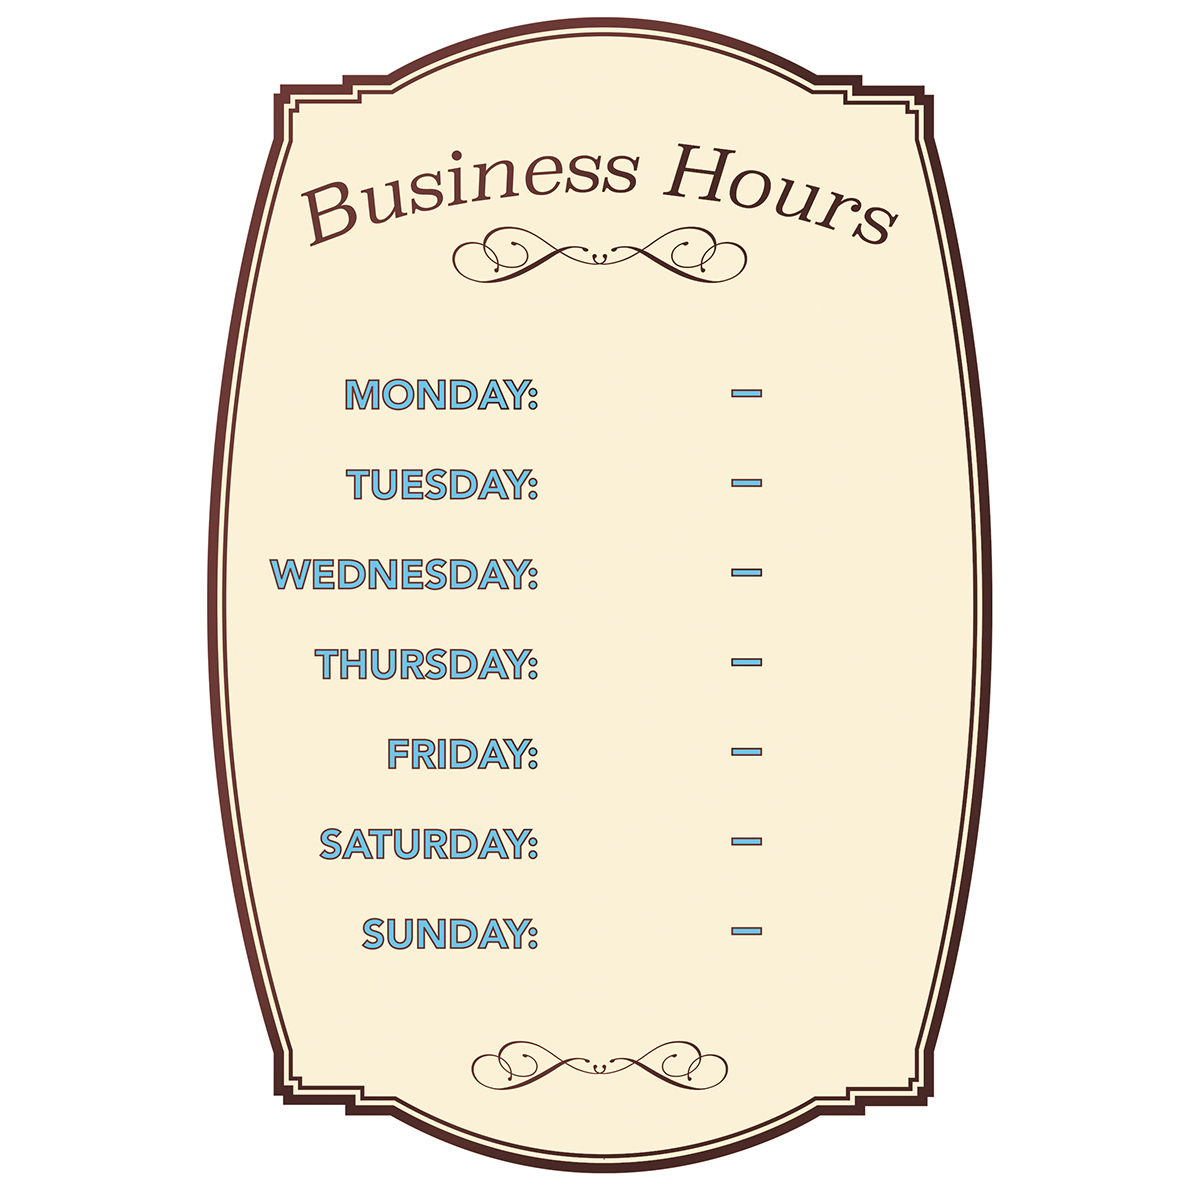 Business Hours - Boutique Style